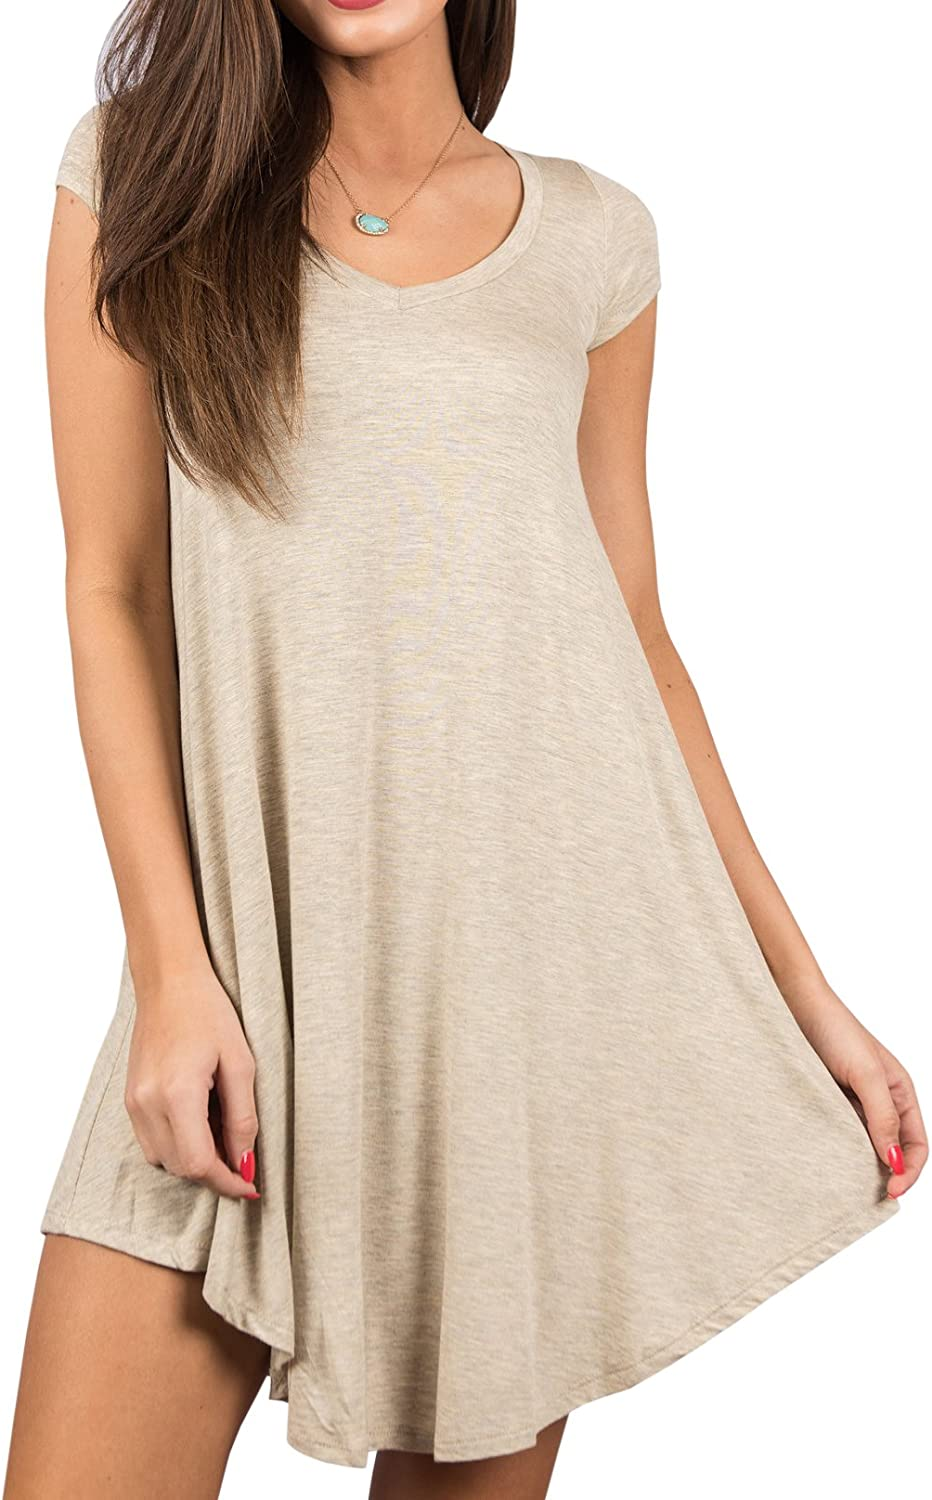 Imysty Womens Casual Swing TShirt Dress Short Sleeve Loose Crew Neck Tunic Top